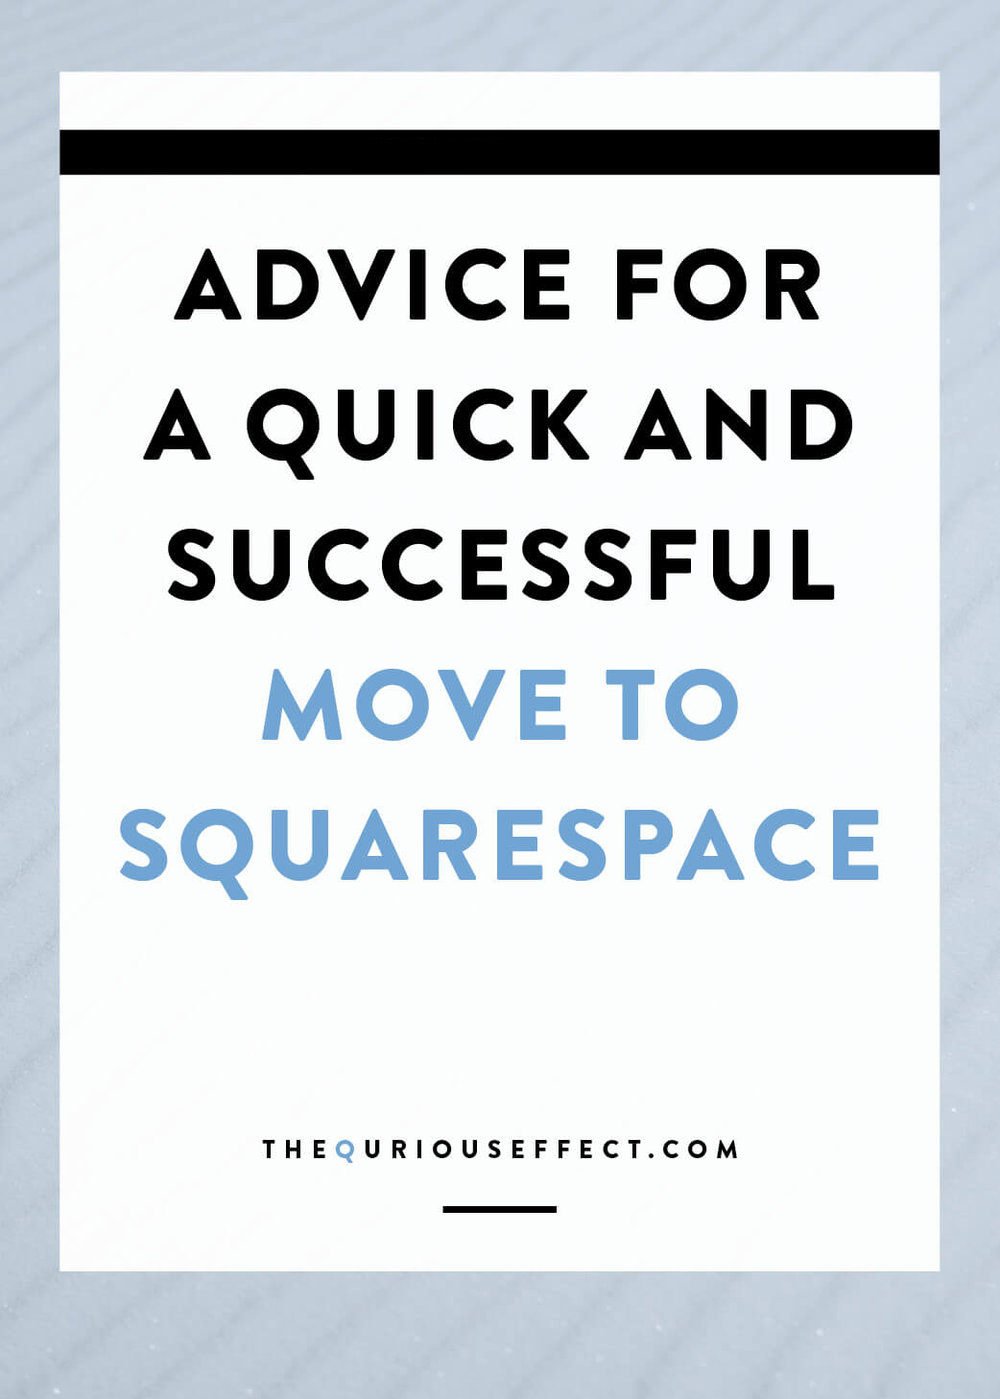 Advice for a quick and successful move to Squarespace by The Qurious Effect. A brand and Squarespace web design studio.